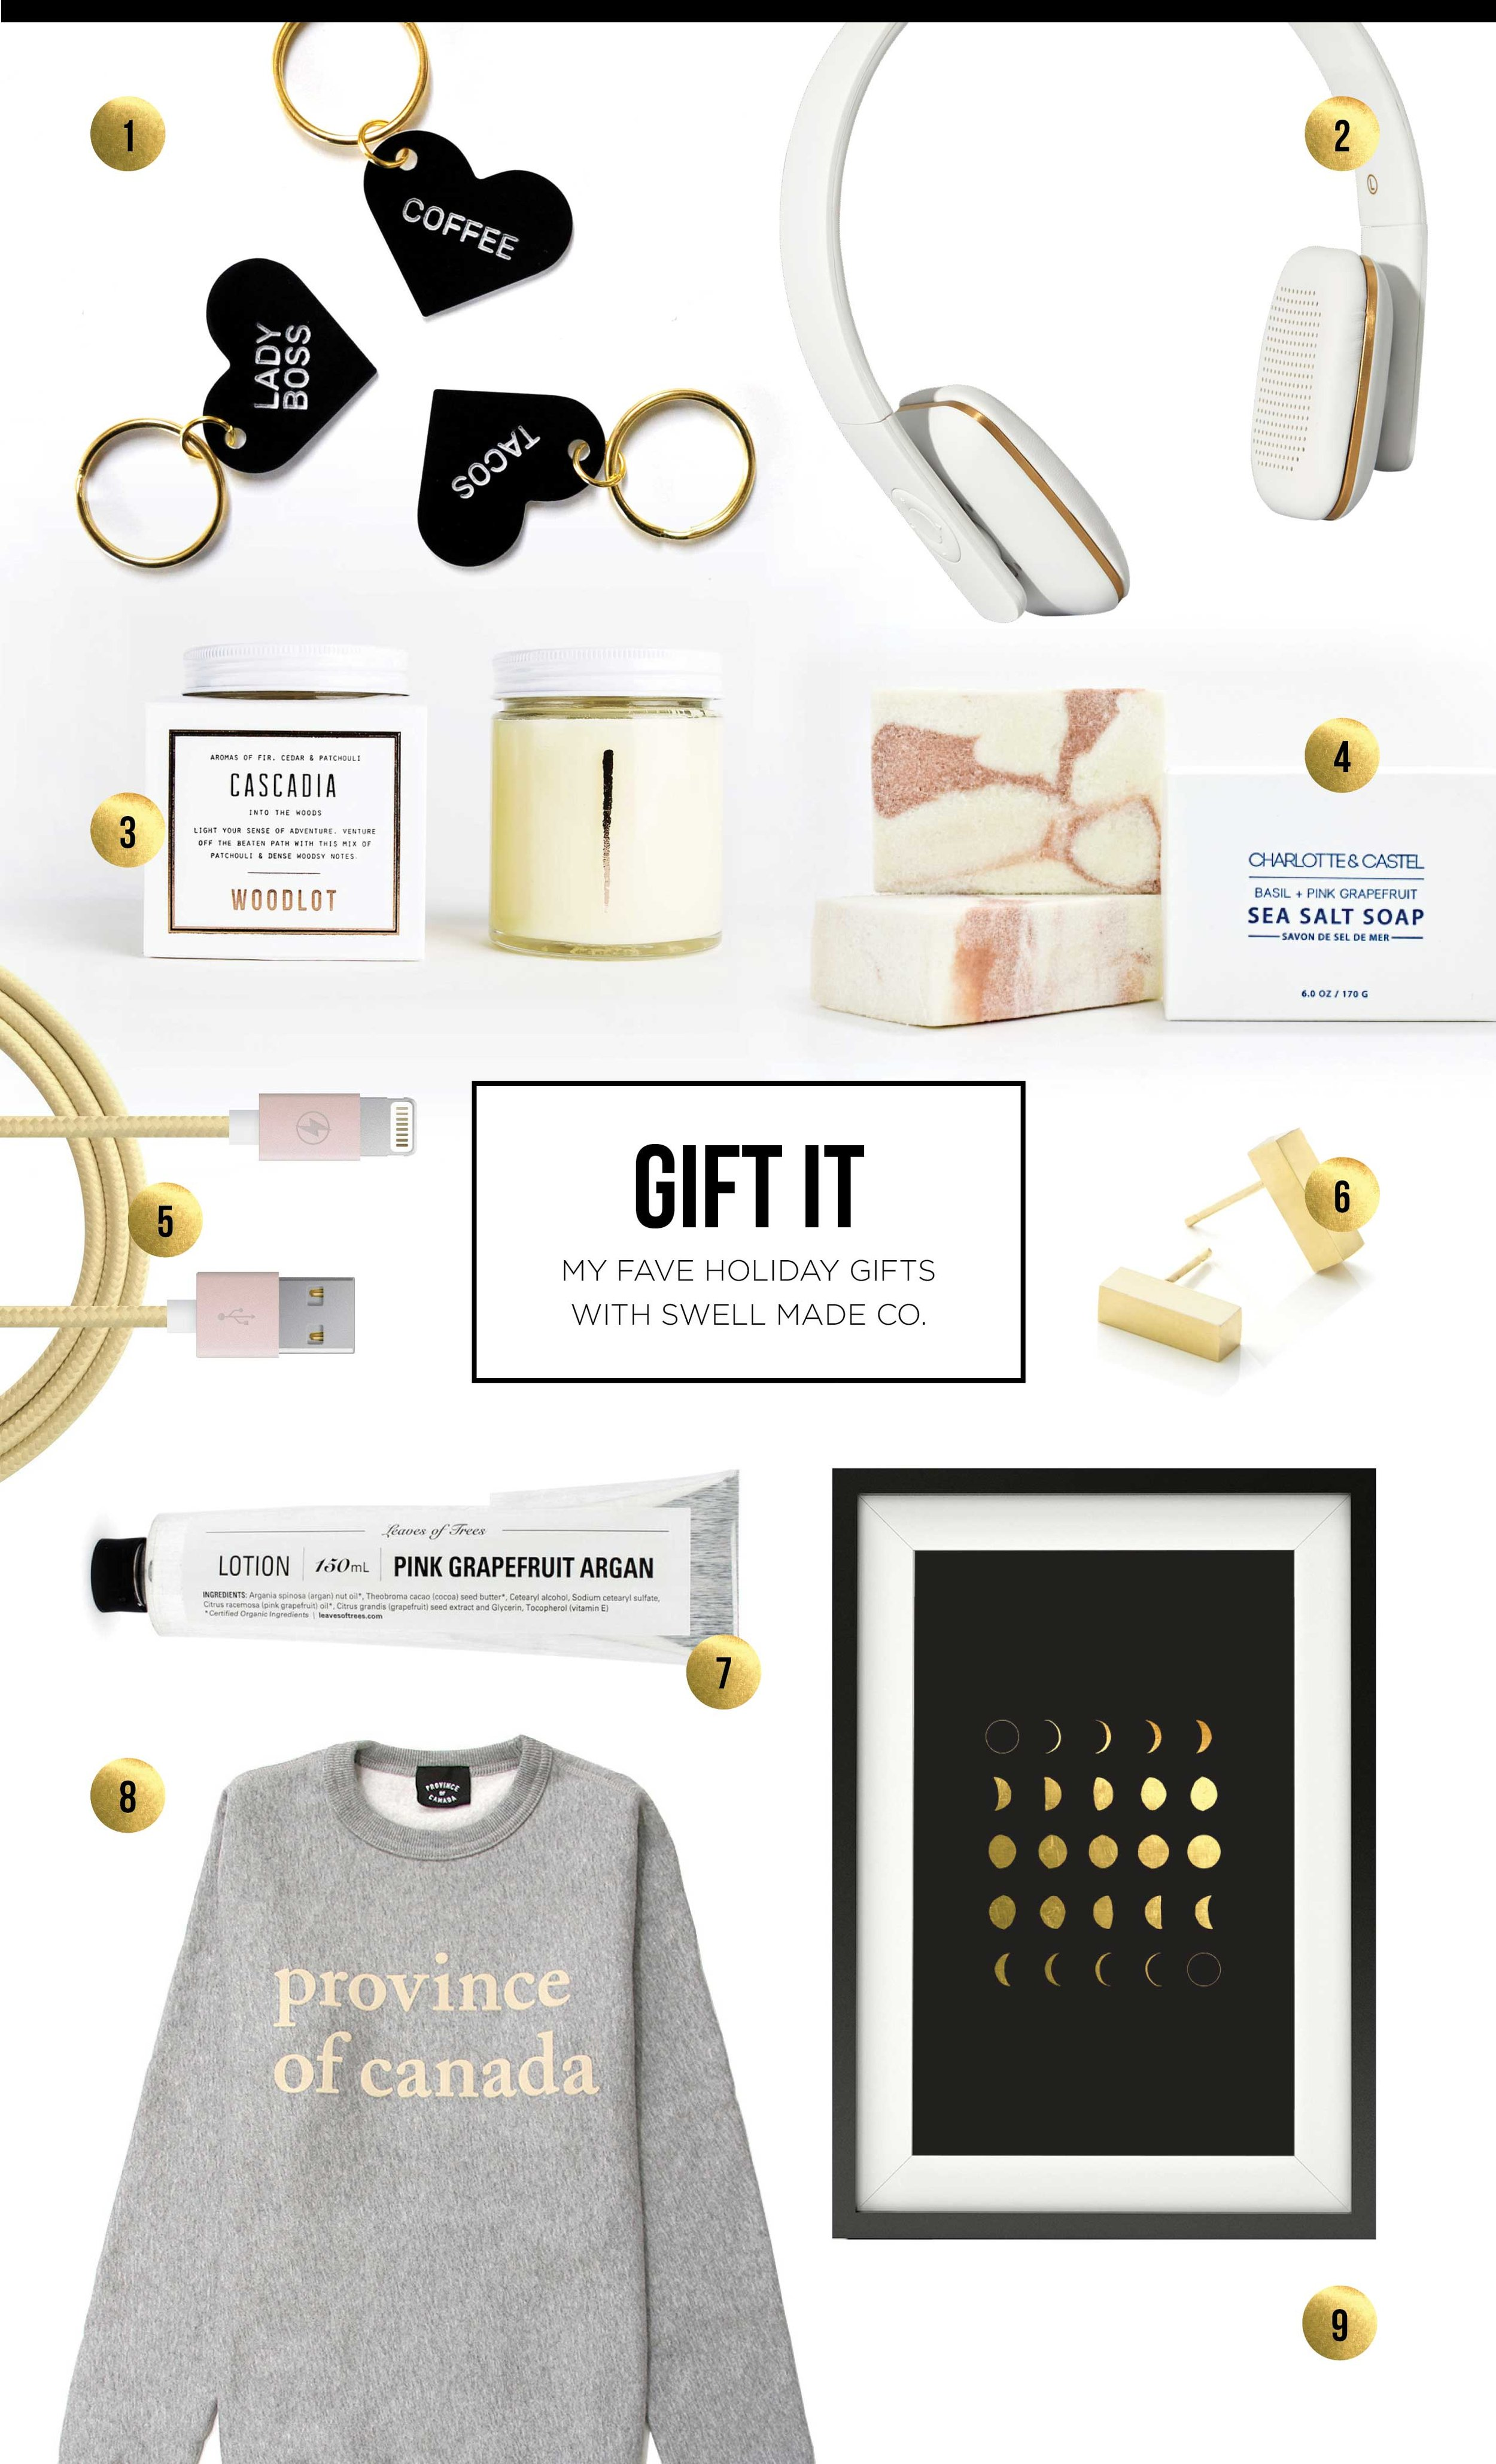 LOVE IT - My fave holiday gifts with Swell Made Co.